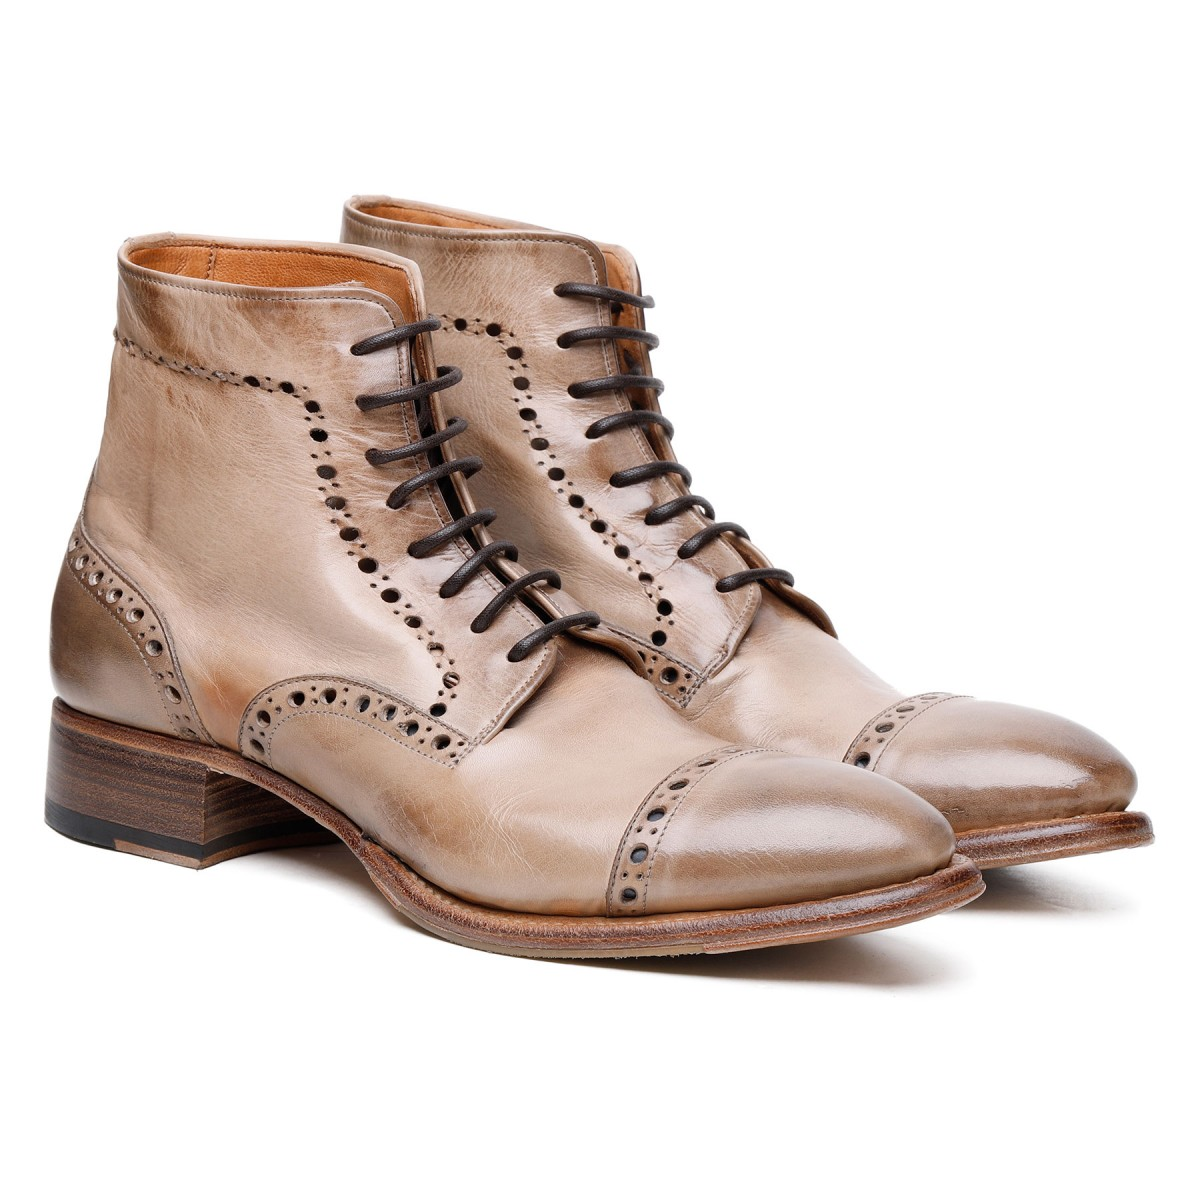 Clay-hue leather Brogue booties